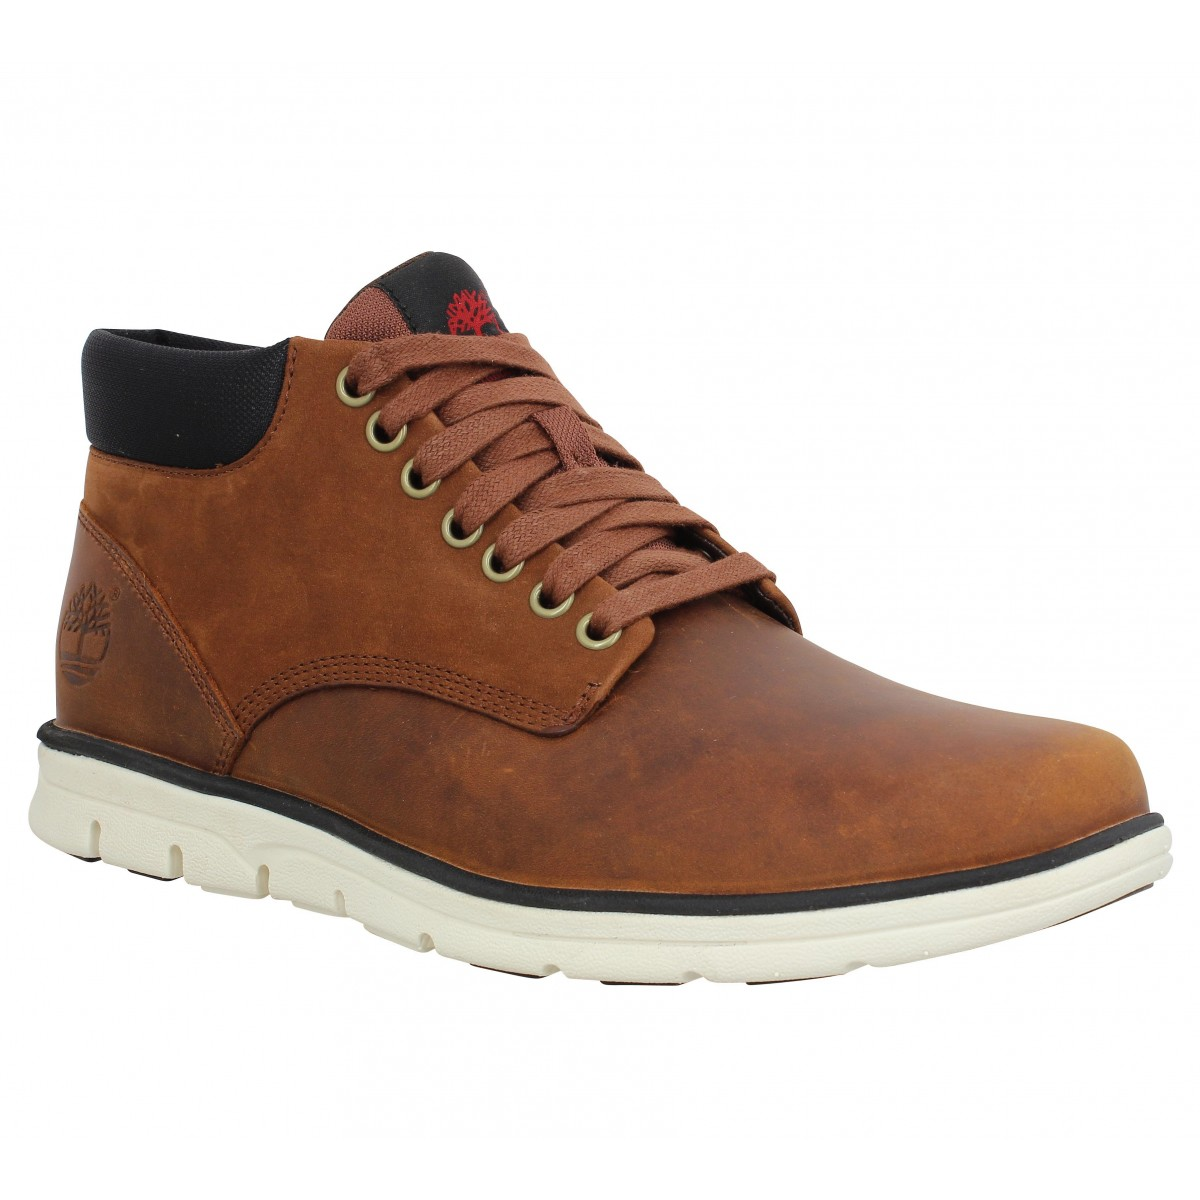 chaussure homme timberland cuir